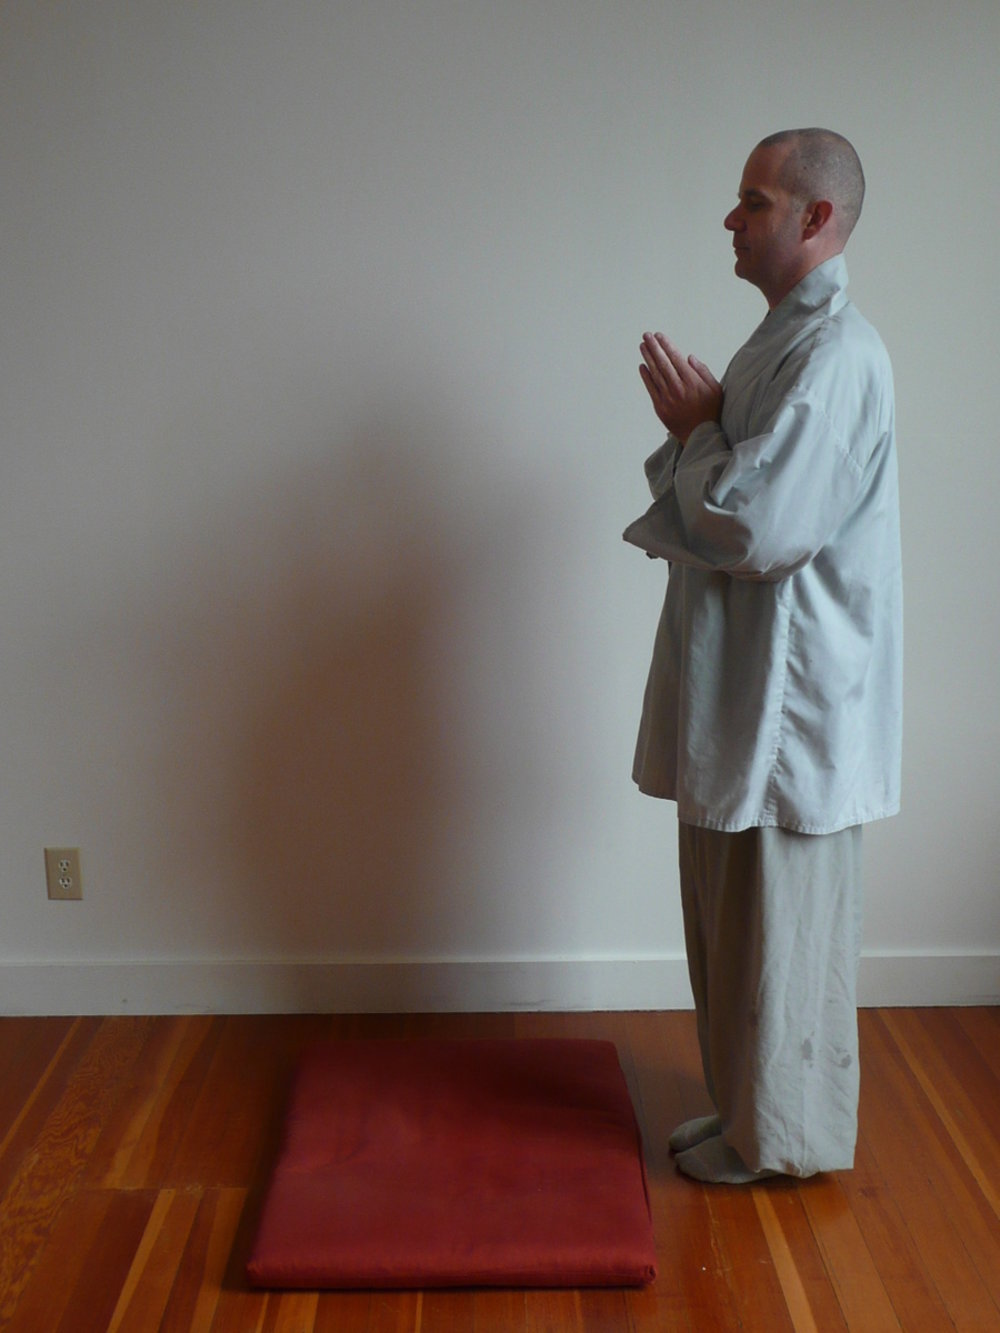 3. Return to standing position. -